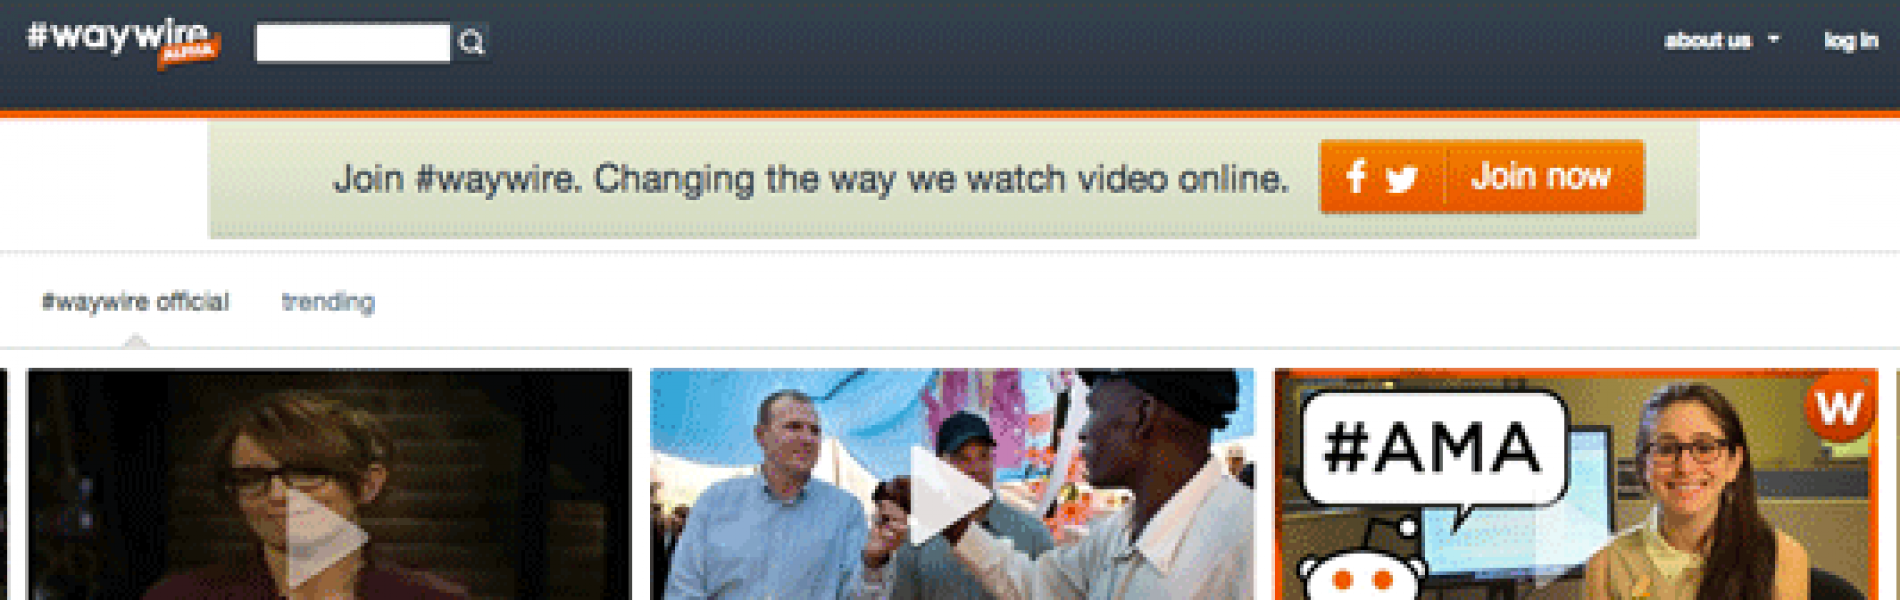 """REVIEW: Waywire.com claims they are """"Changing the Way We Watch Video Online""""."""